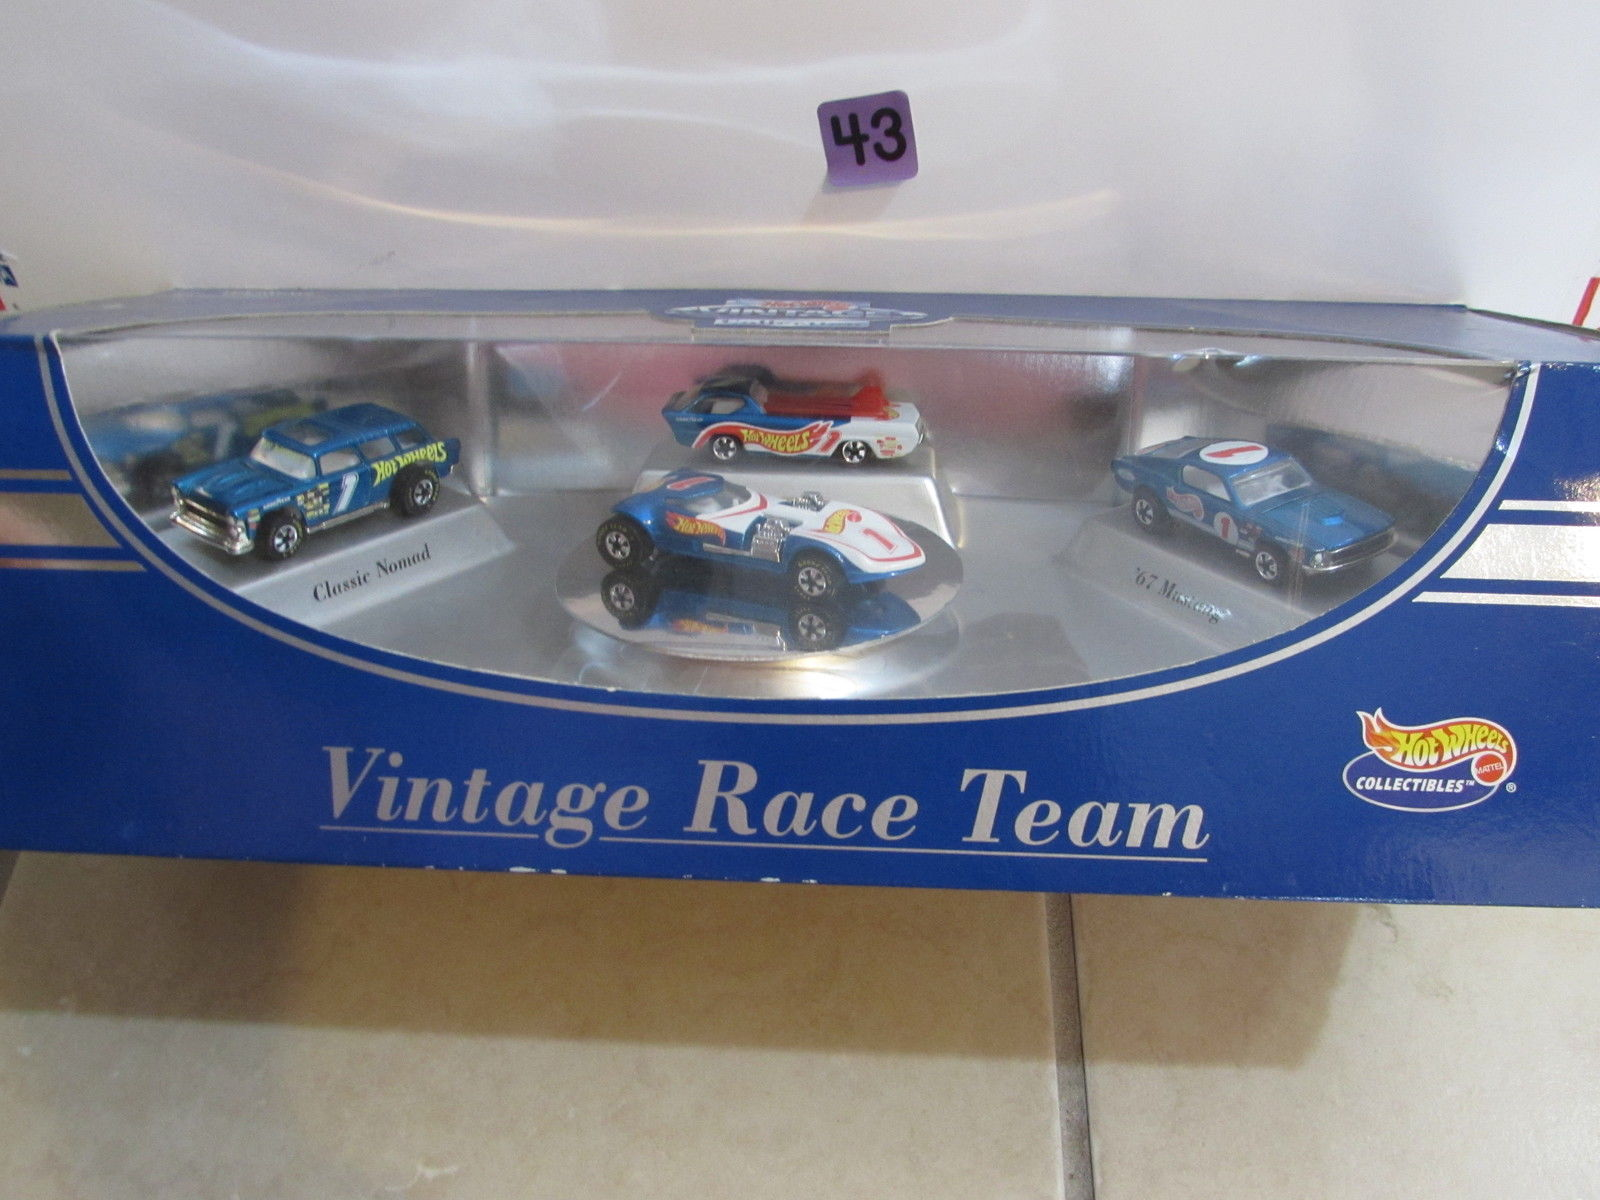 HOT WHEELS COLLECTIBLES VINTAGE RACE TEAM NOMAD - DEORA - MUSTANG - 4 CAR PACK